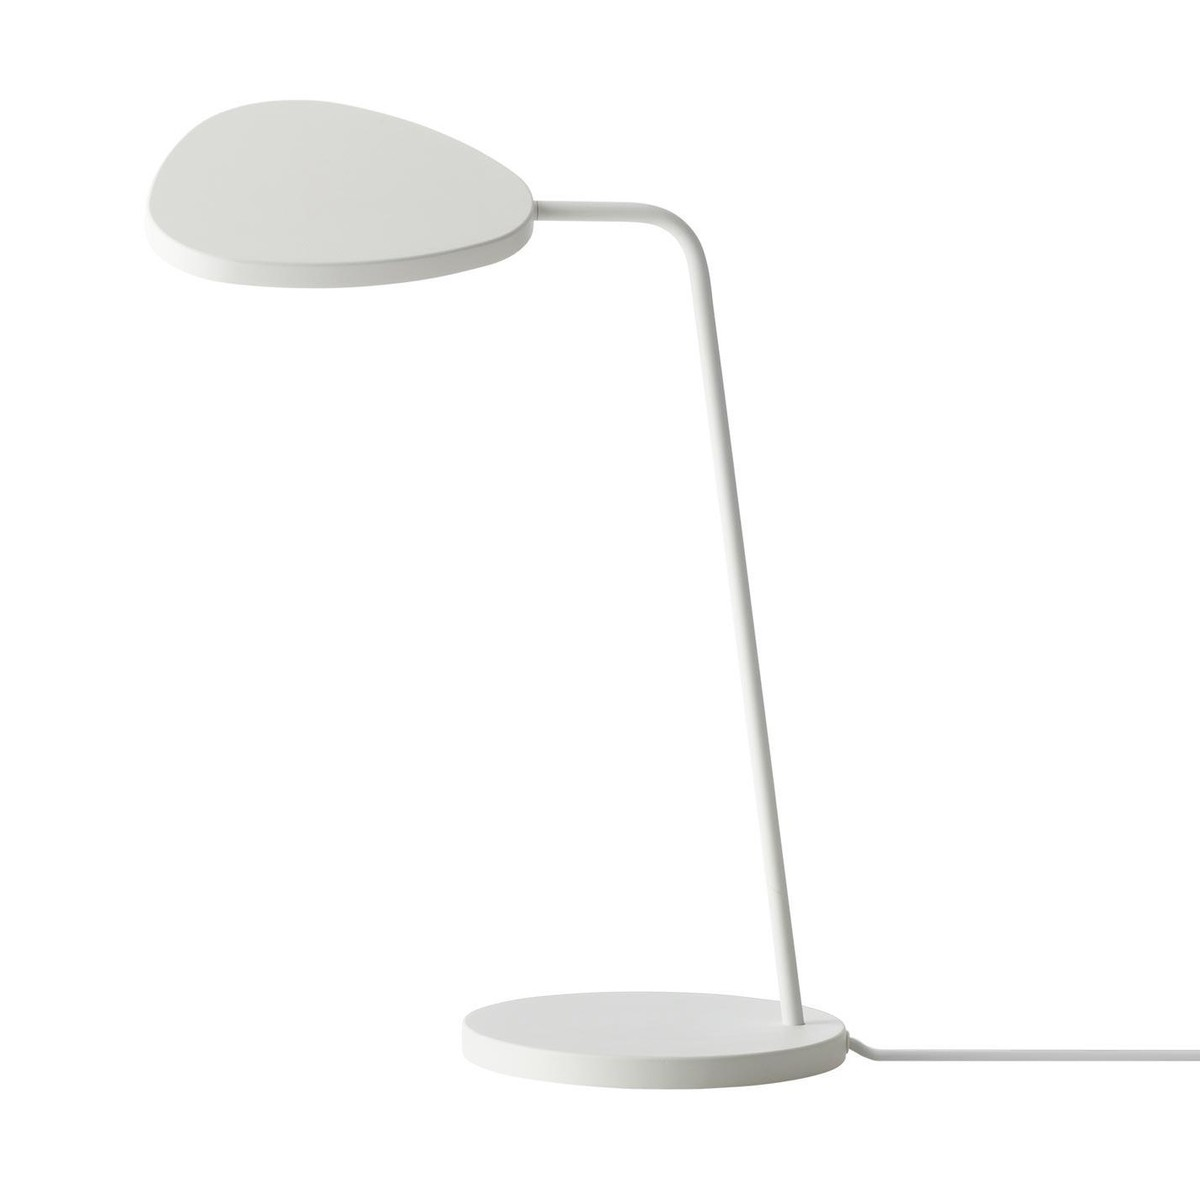 leaf led table lamp  muuto  lighting  ambientedirectcom - muuto  leaf led table lamp  whitelacqueredh cm